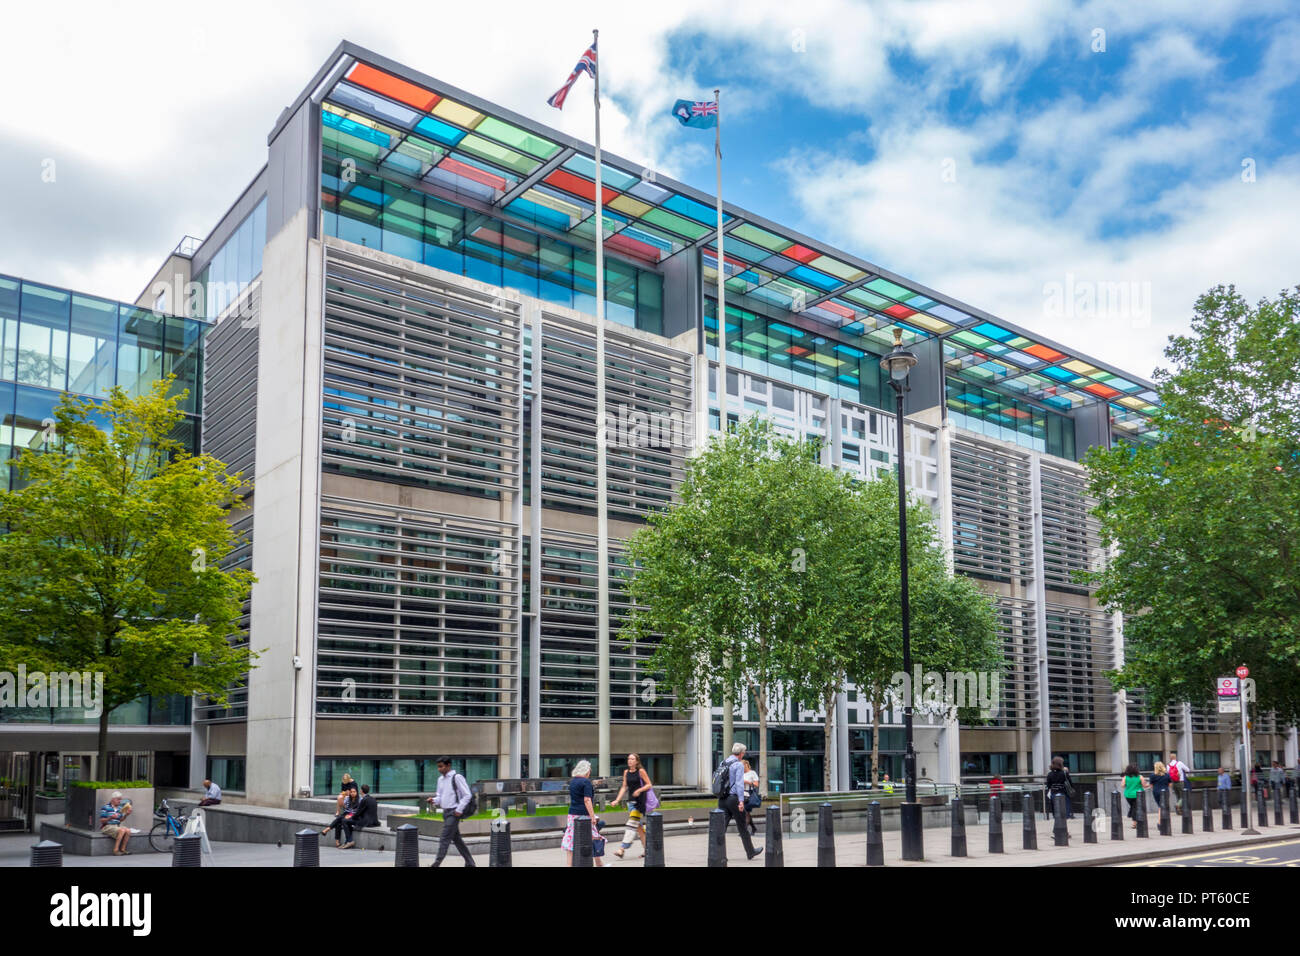 2 Marsham Street, Home Office government building by Terry Farrell of Farrells architects, Westminster, London, UK - Stock Image